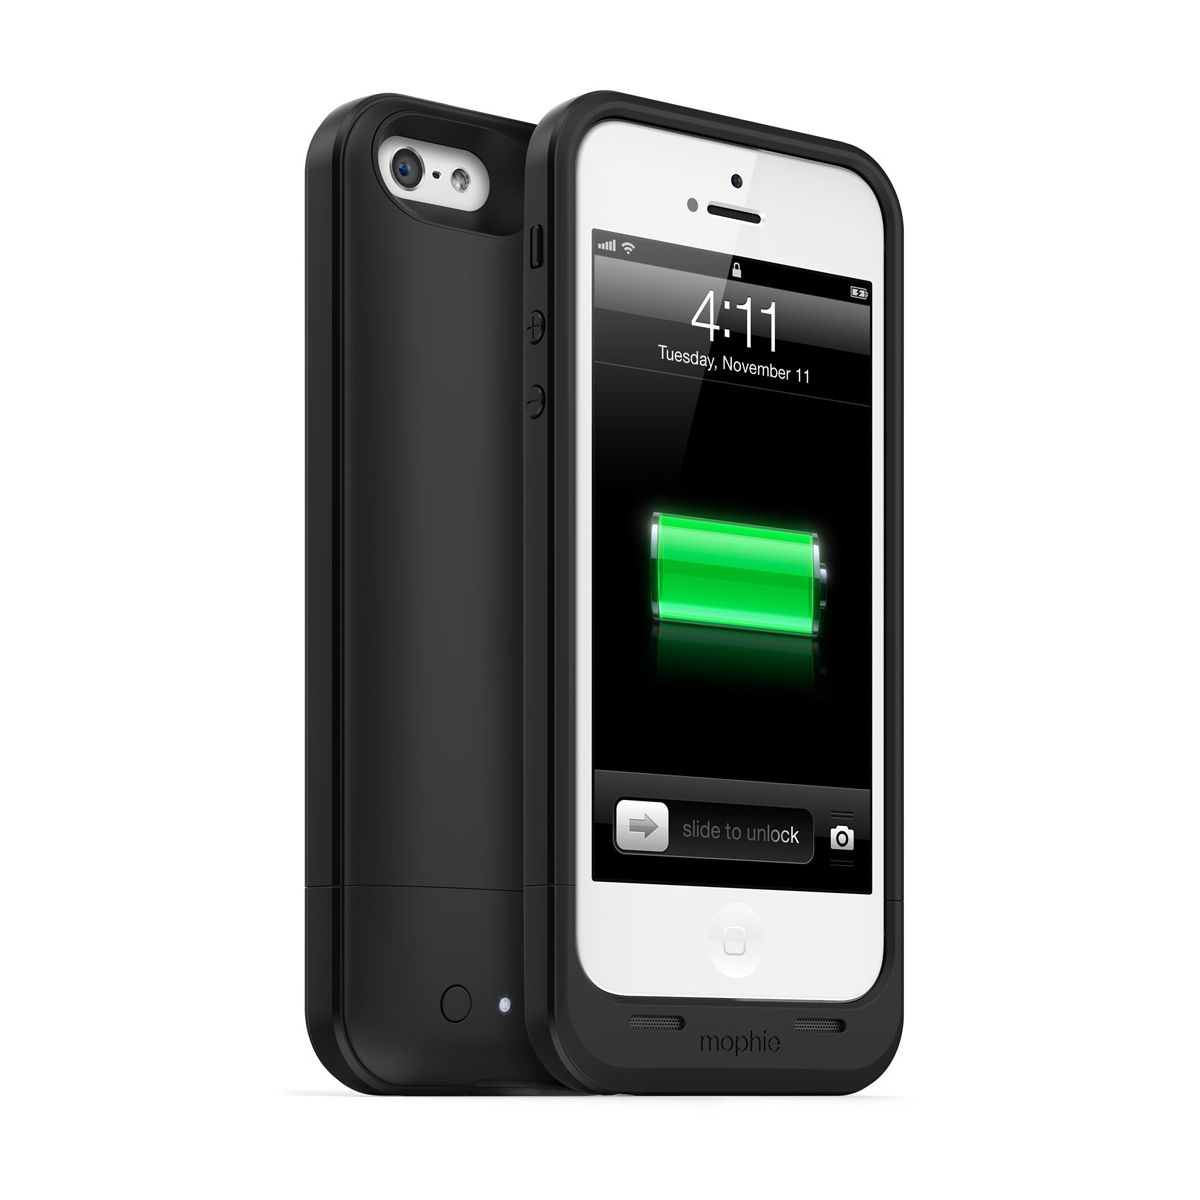 mophie hc927z a coque avec batterie pour iphone 5 1 7 a. Black Bedroom Furniture Sets. Home Design Ideas